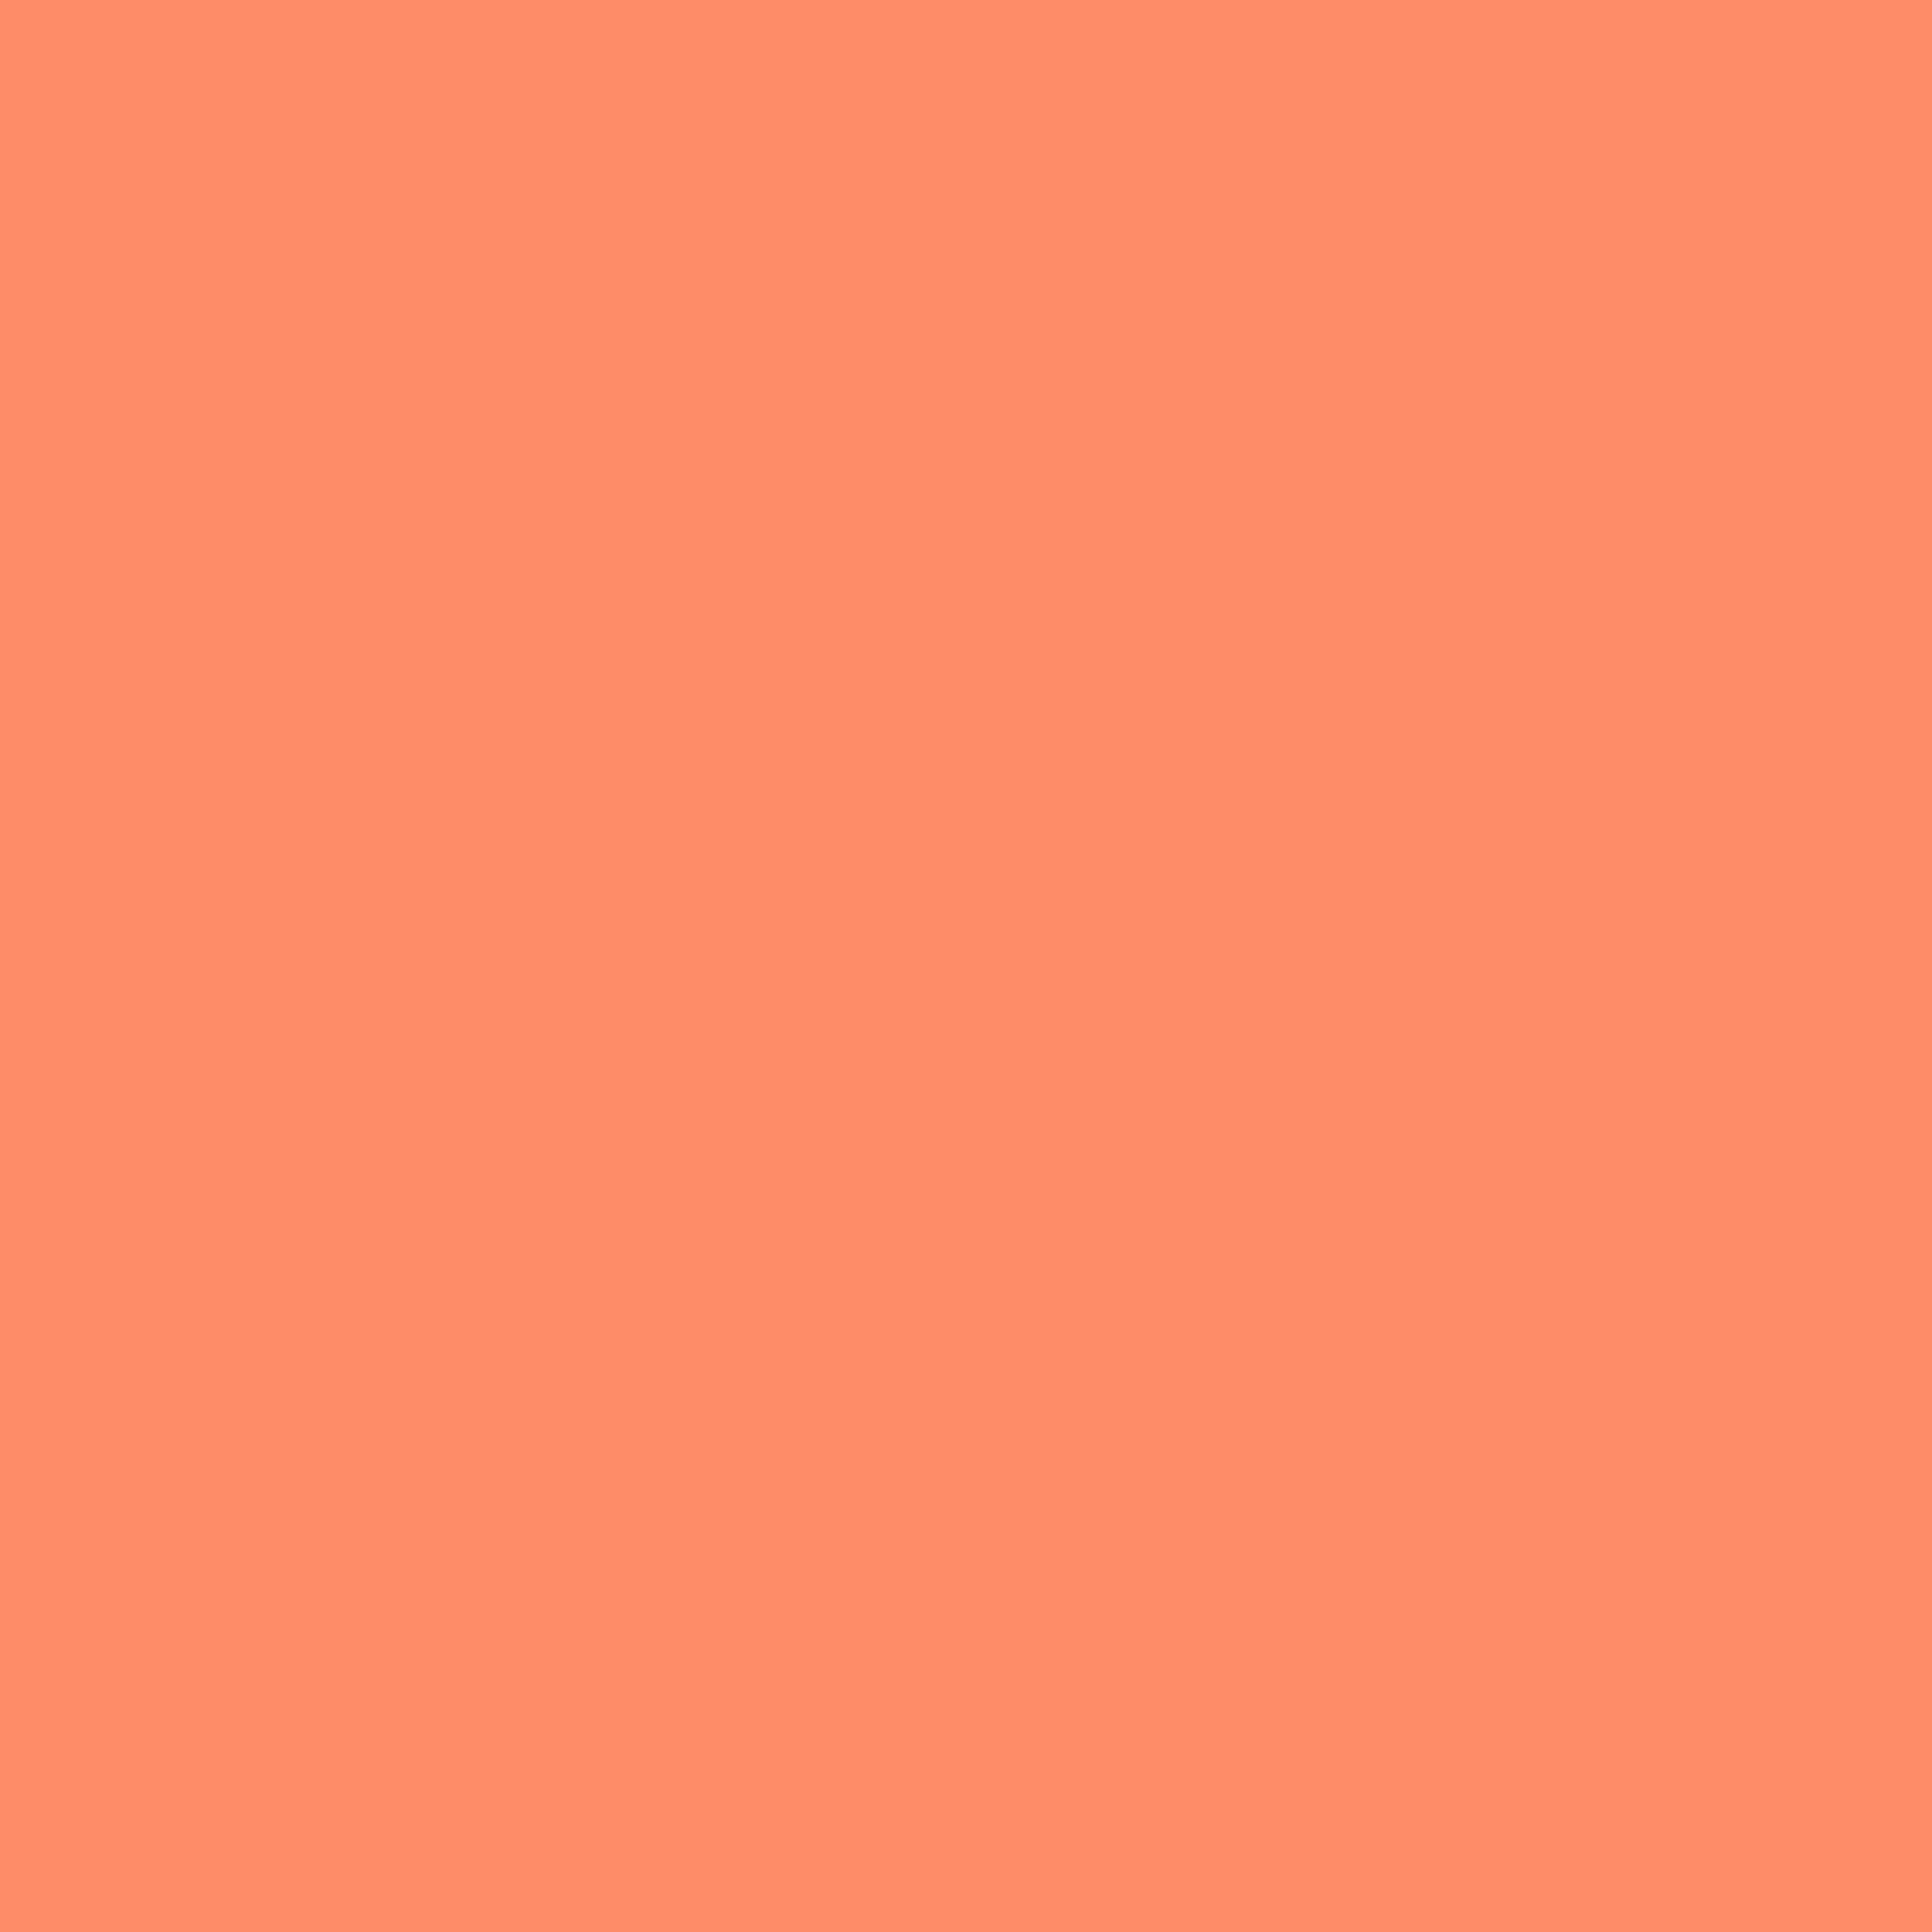 2732x2732 Salmon Solid Color Background